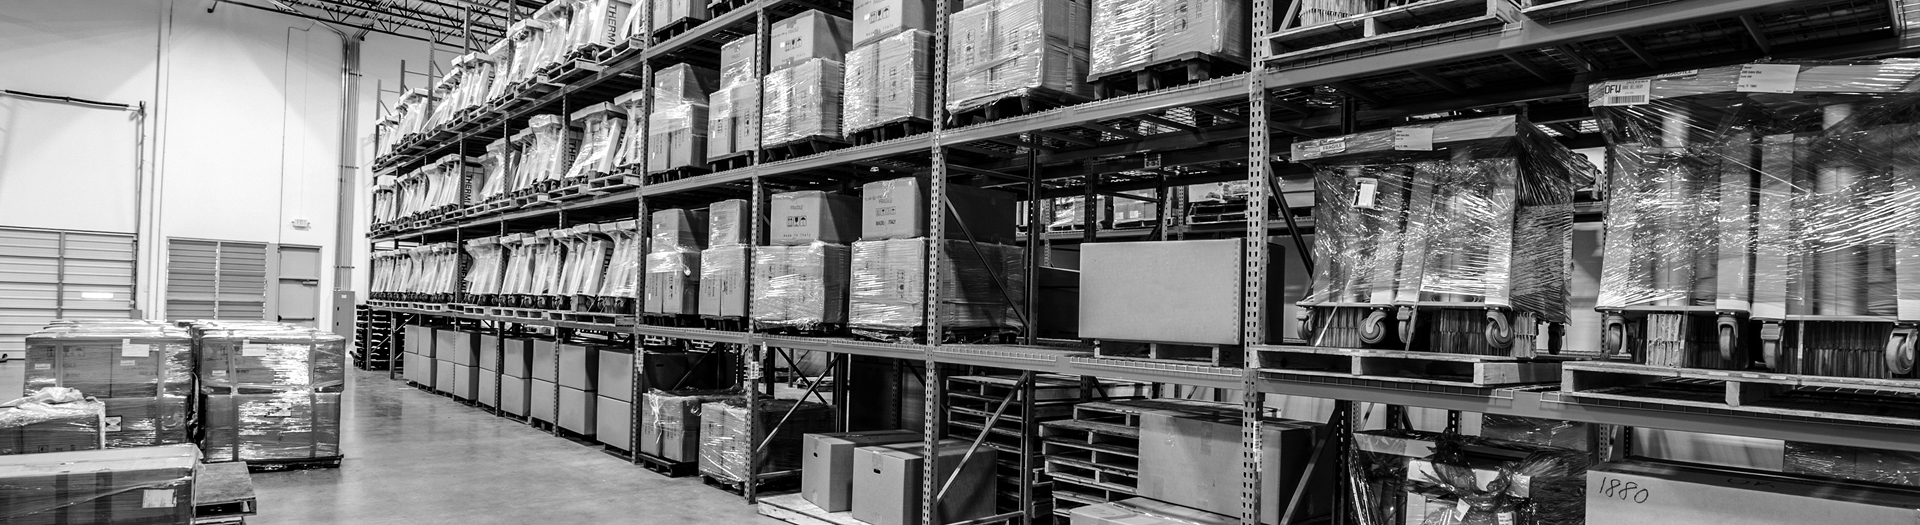 View of shelving at the Dove Logistics Warehouse